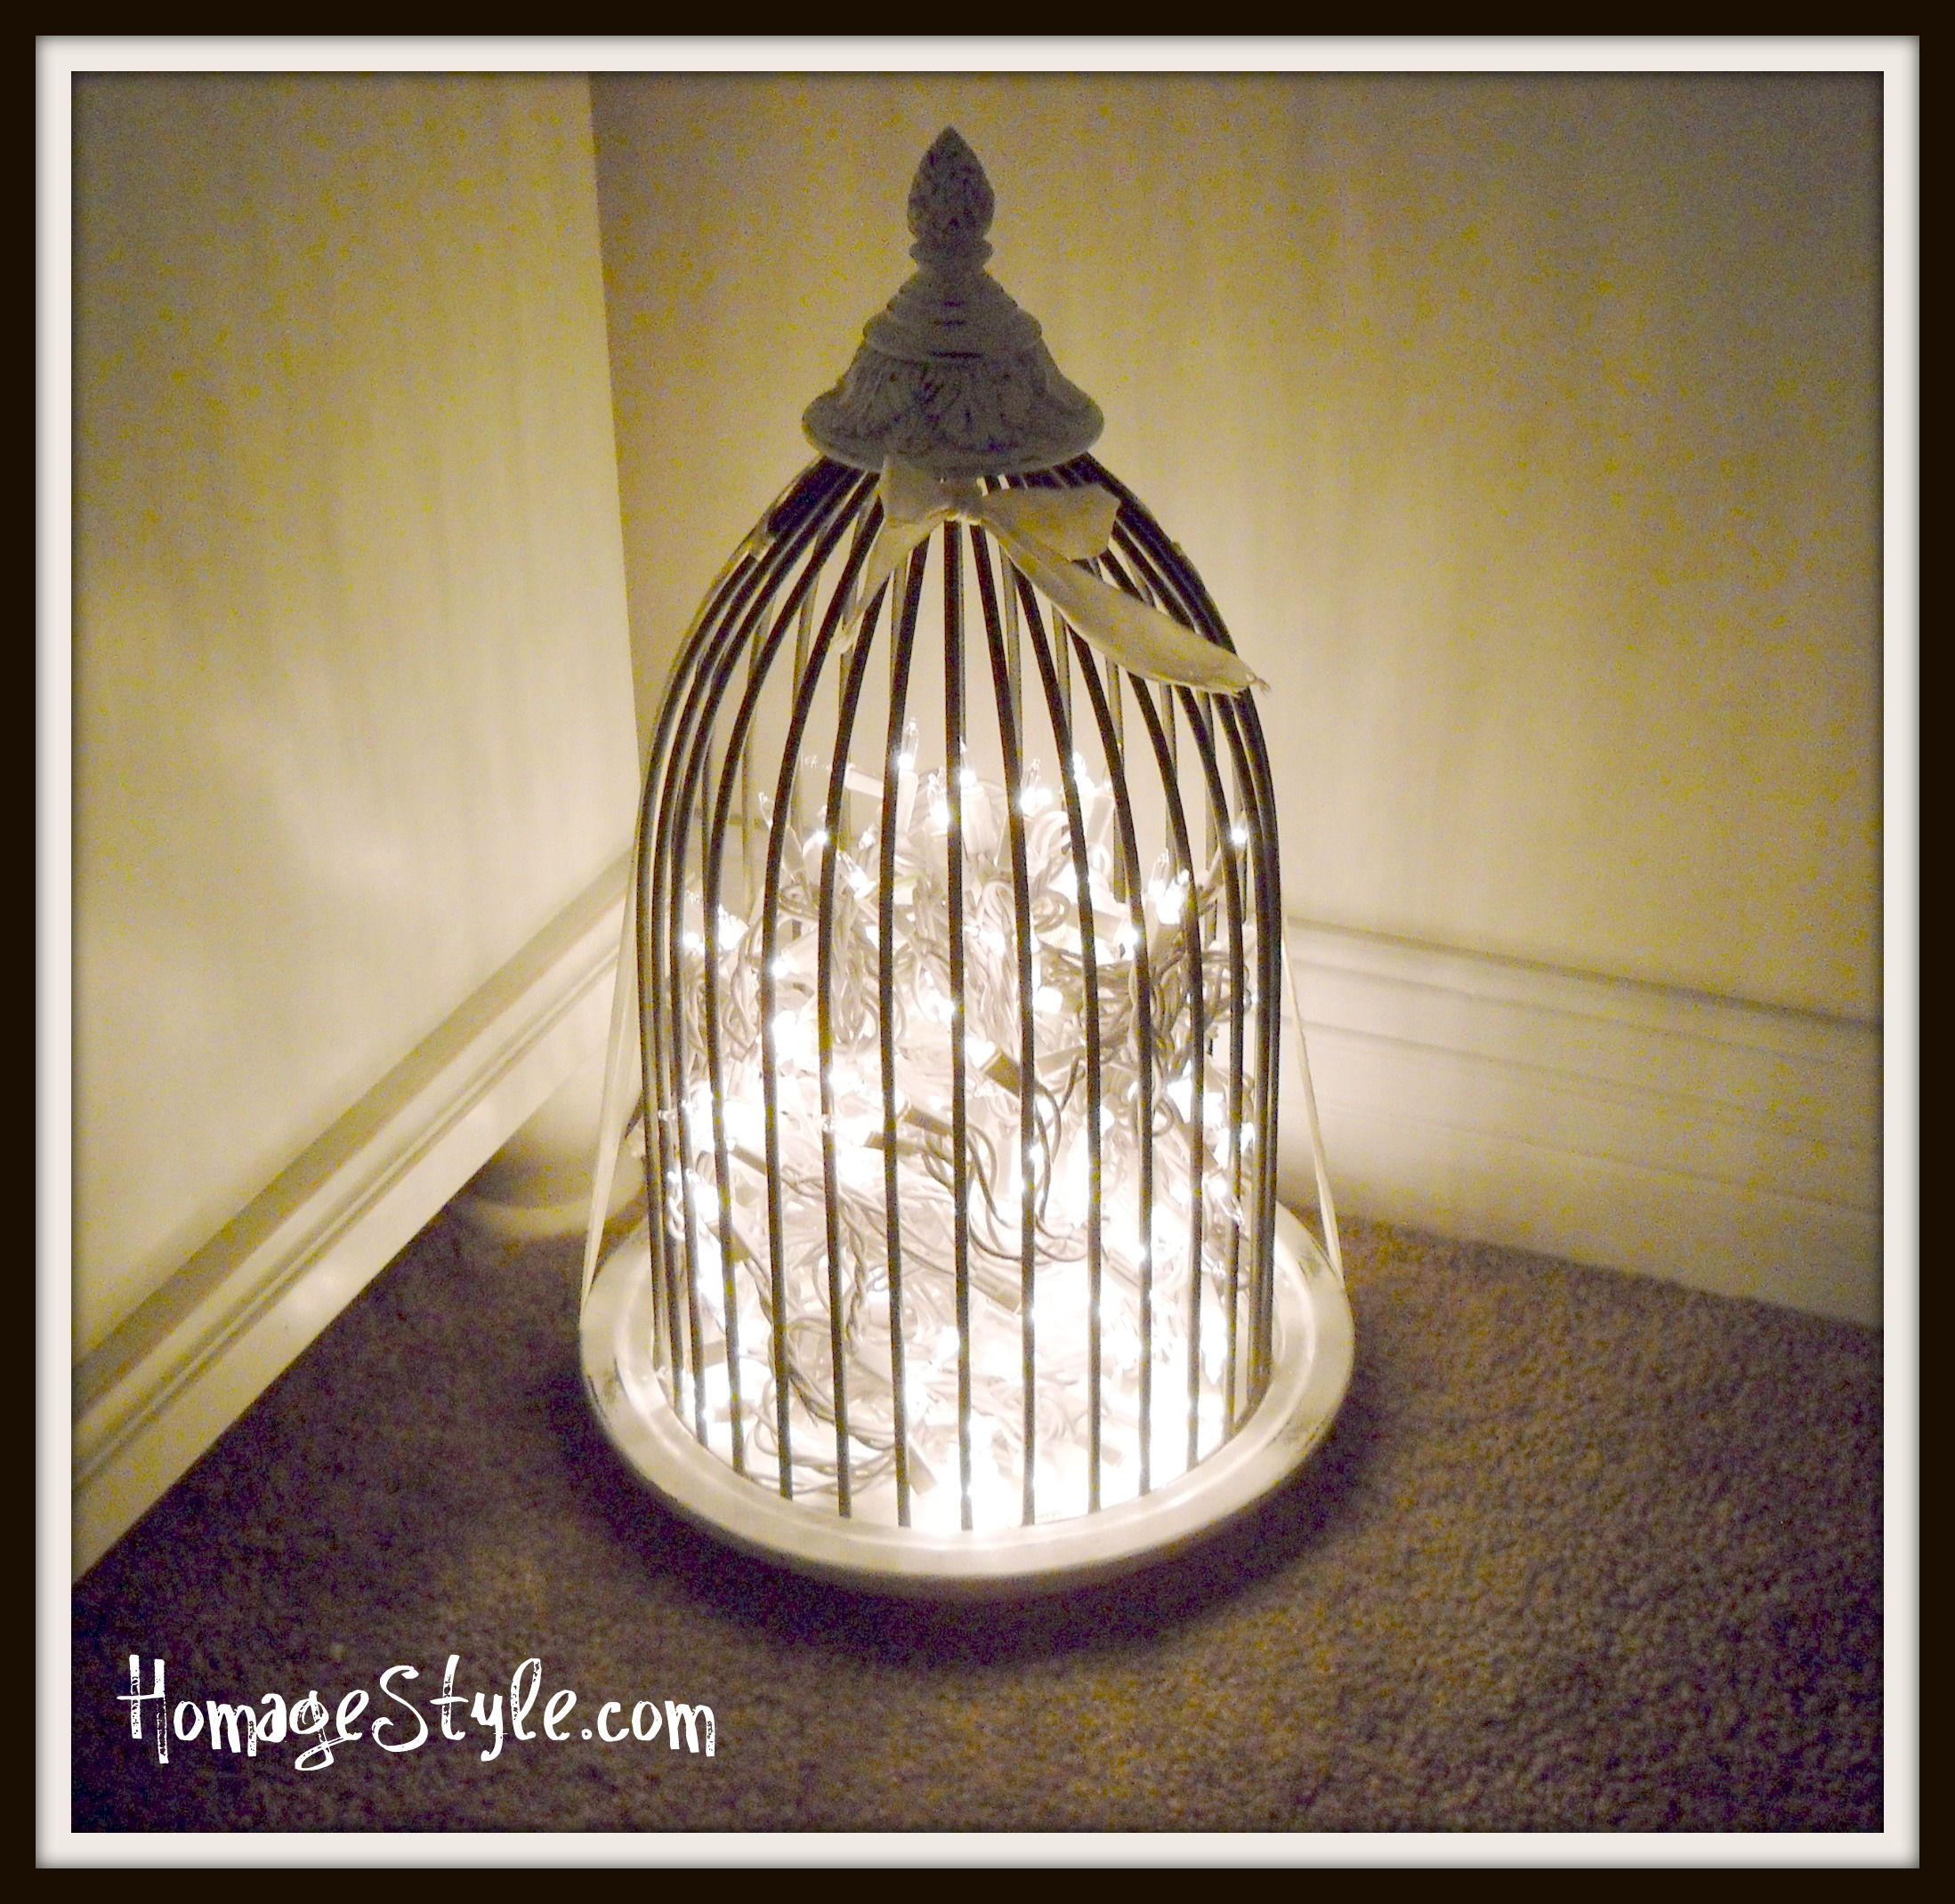 29. Reuse a bird cage as a luminary